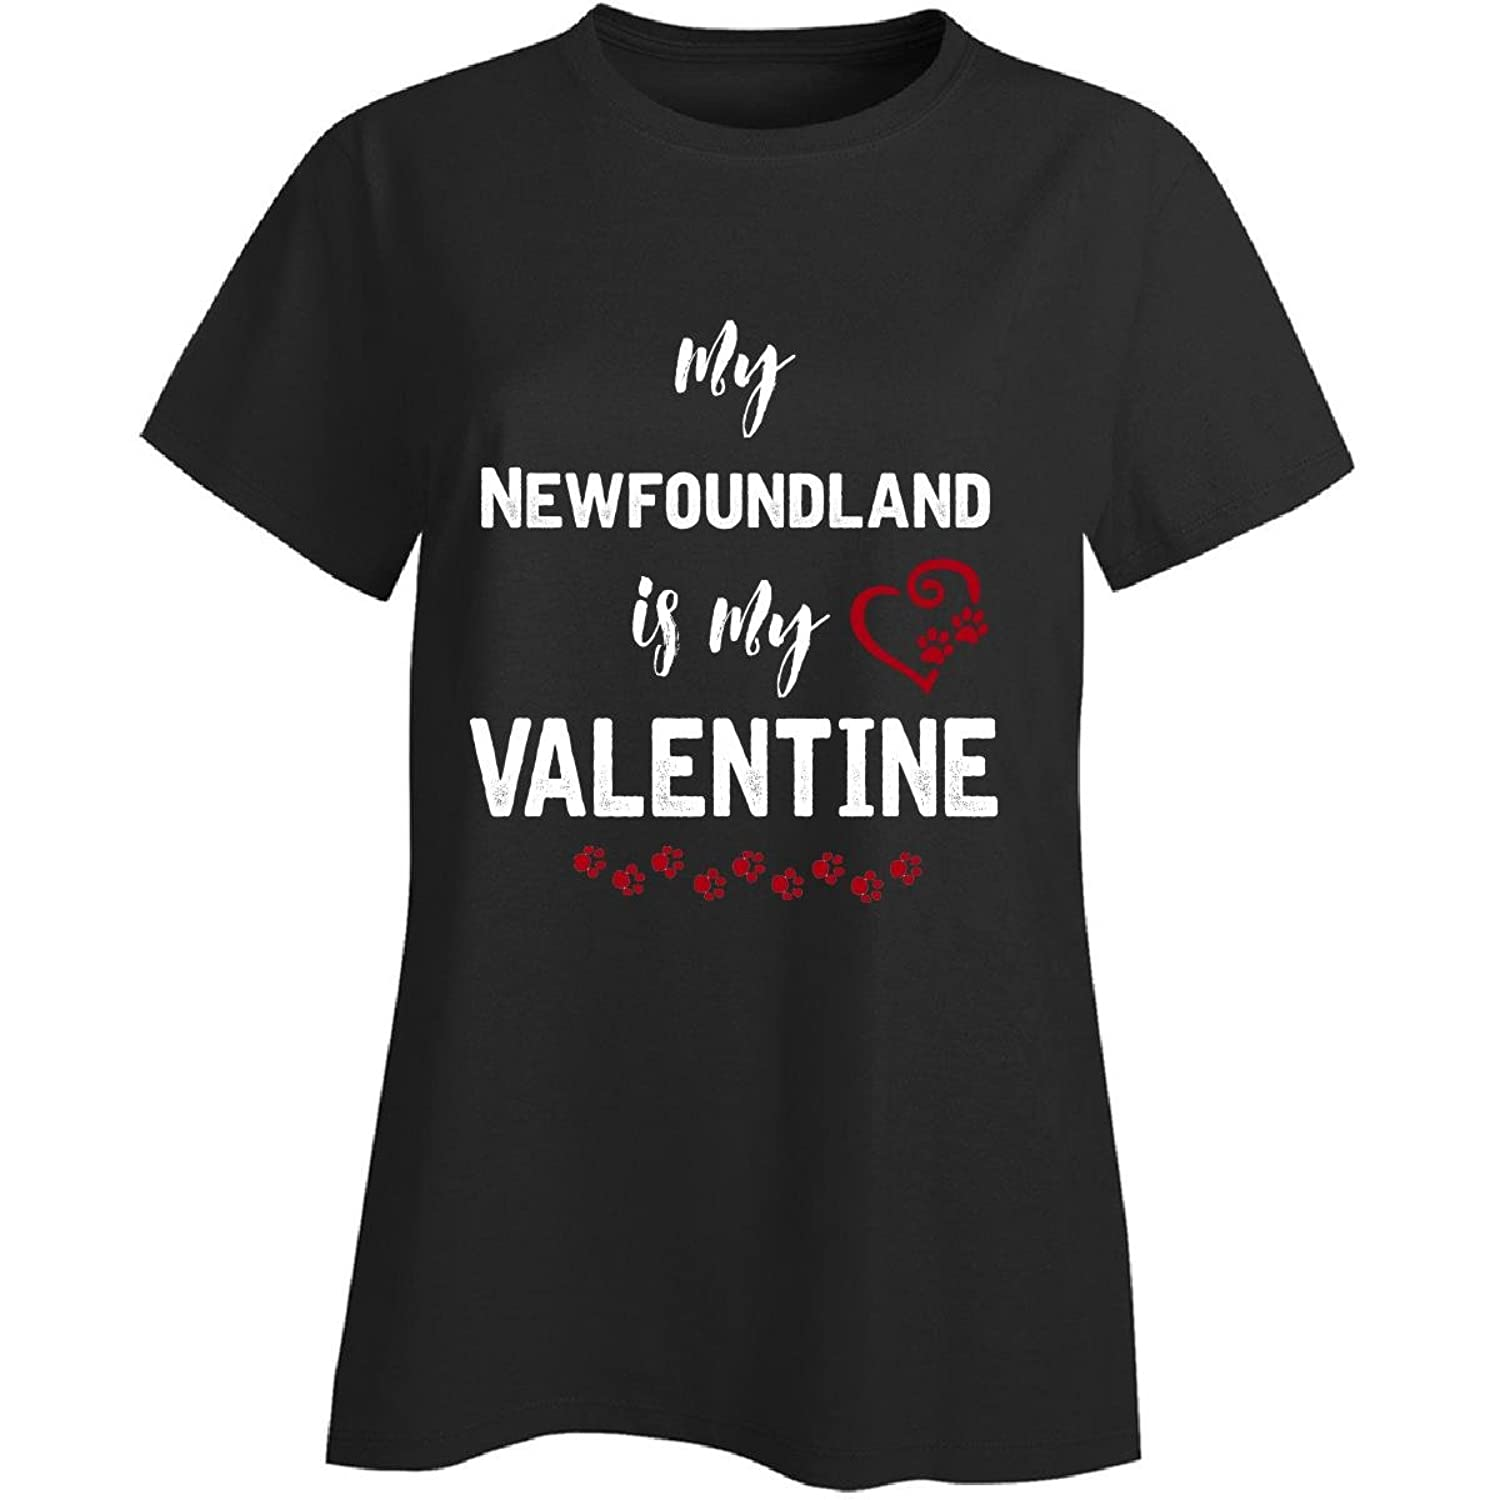 My Newfoundland Is My Valentine. Funny Gift For Dog Lover - Ladies T-shirt